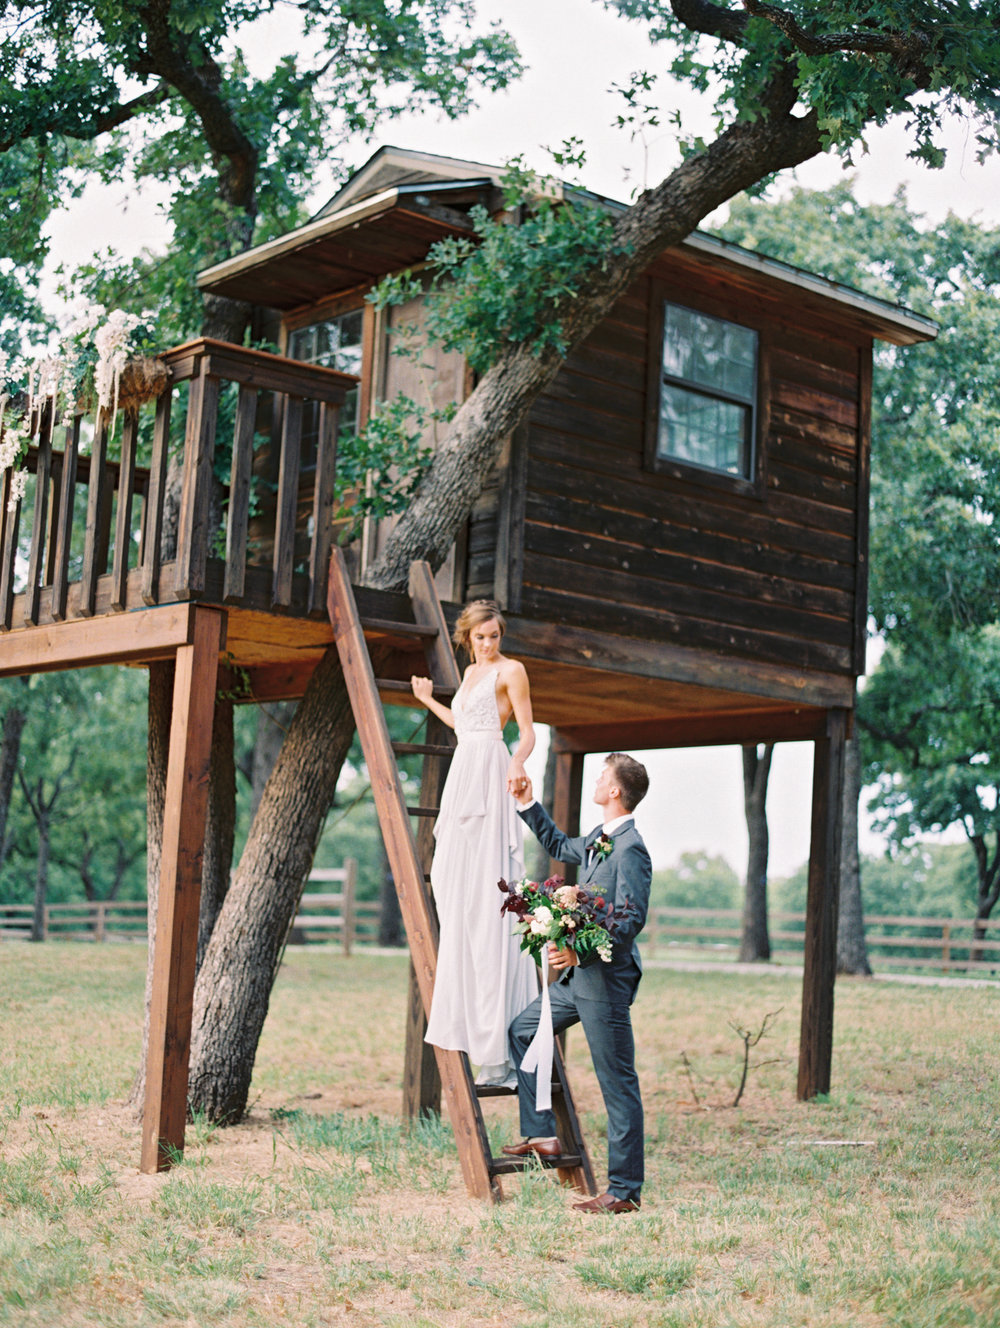 wedding-in-a-treehouse